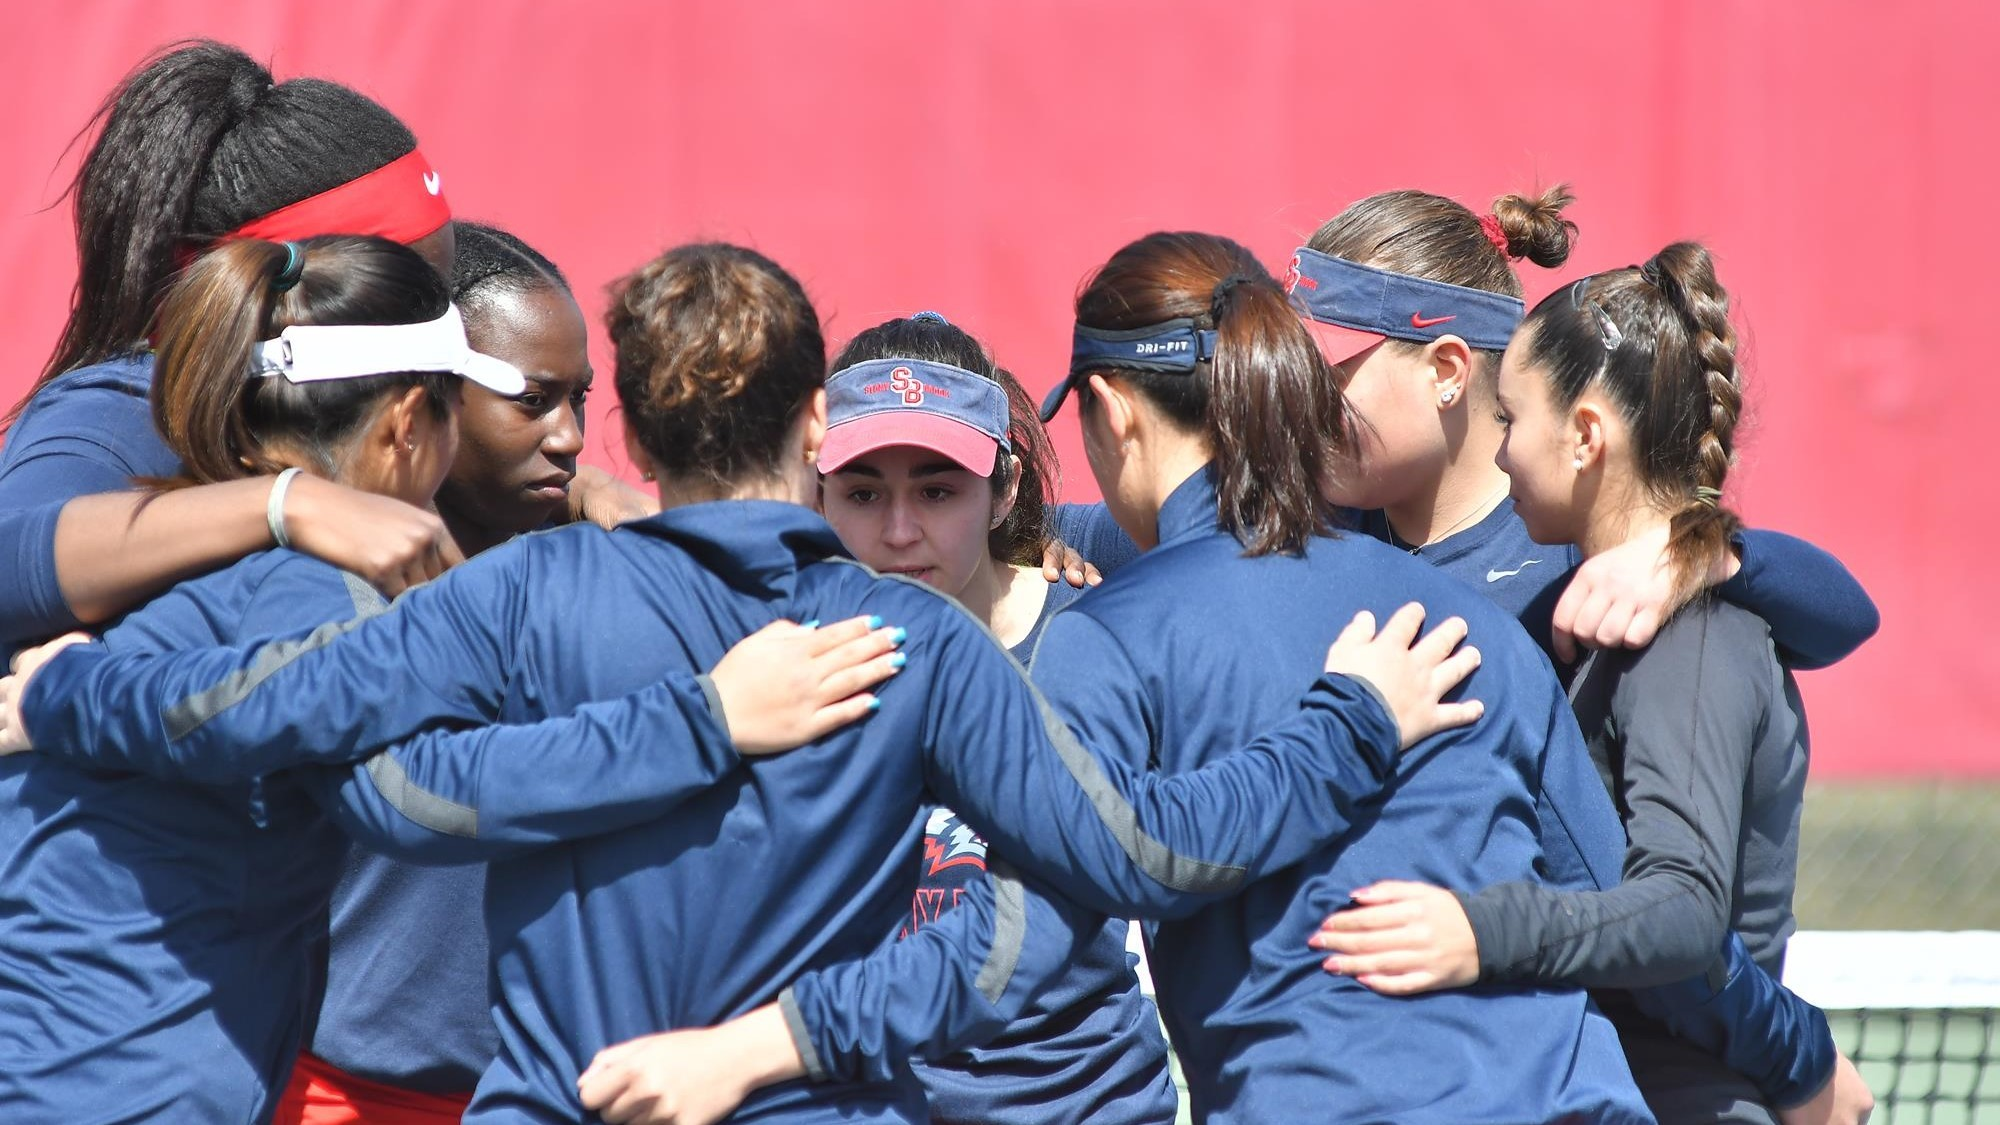 Women's Tennis - Stony Brook University Athletics